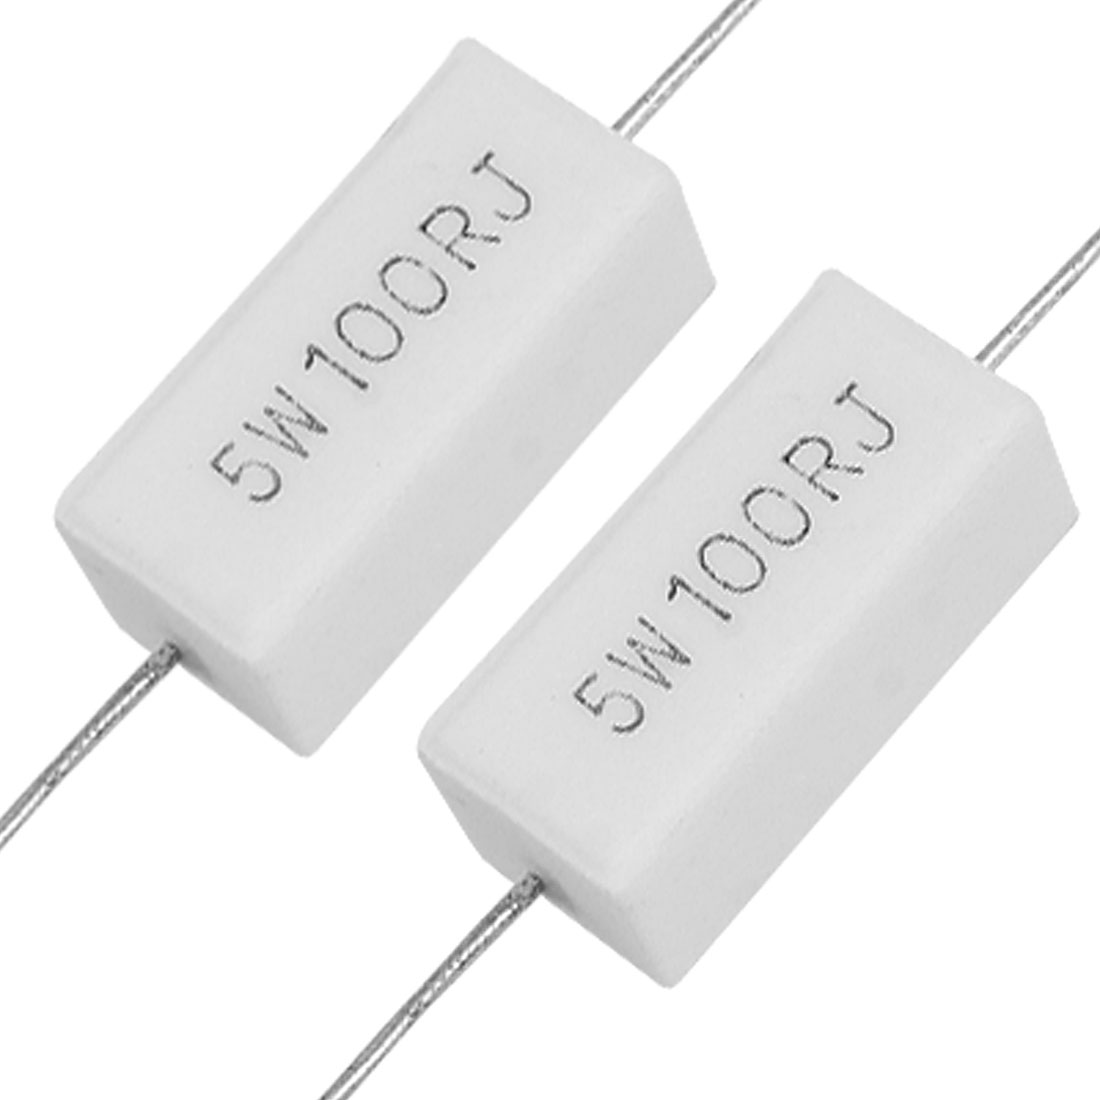 10x Wirewound Ceramic Cement Resistor 100 Ohm 5W Watt 5%